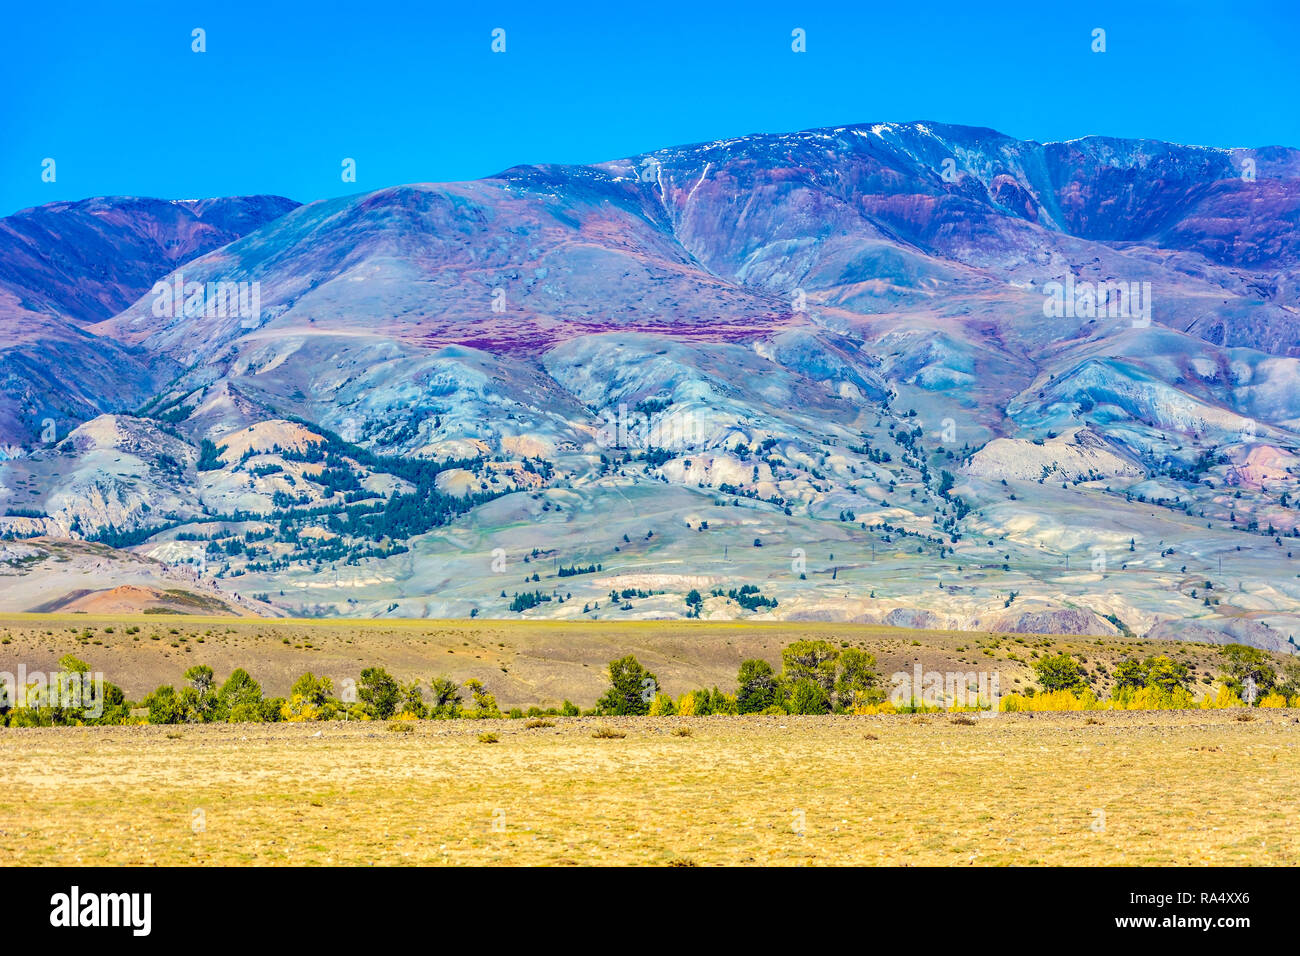 Multi-colored mountains in the valley of the river Kyzyl-Chin, Chui steppe, Altai Republic - Stock Image